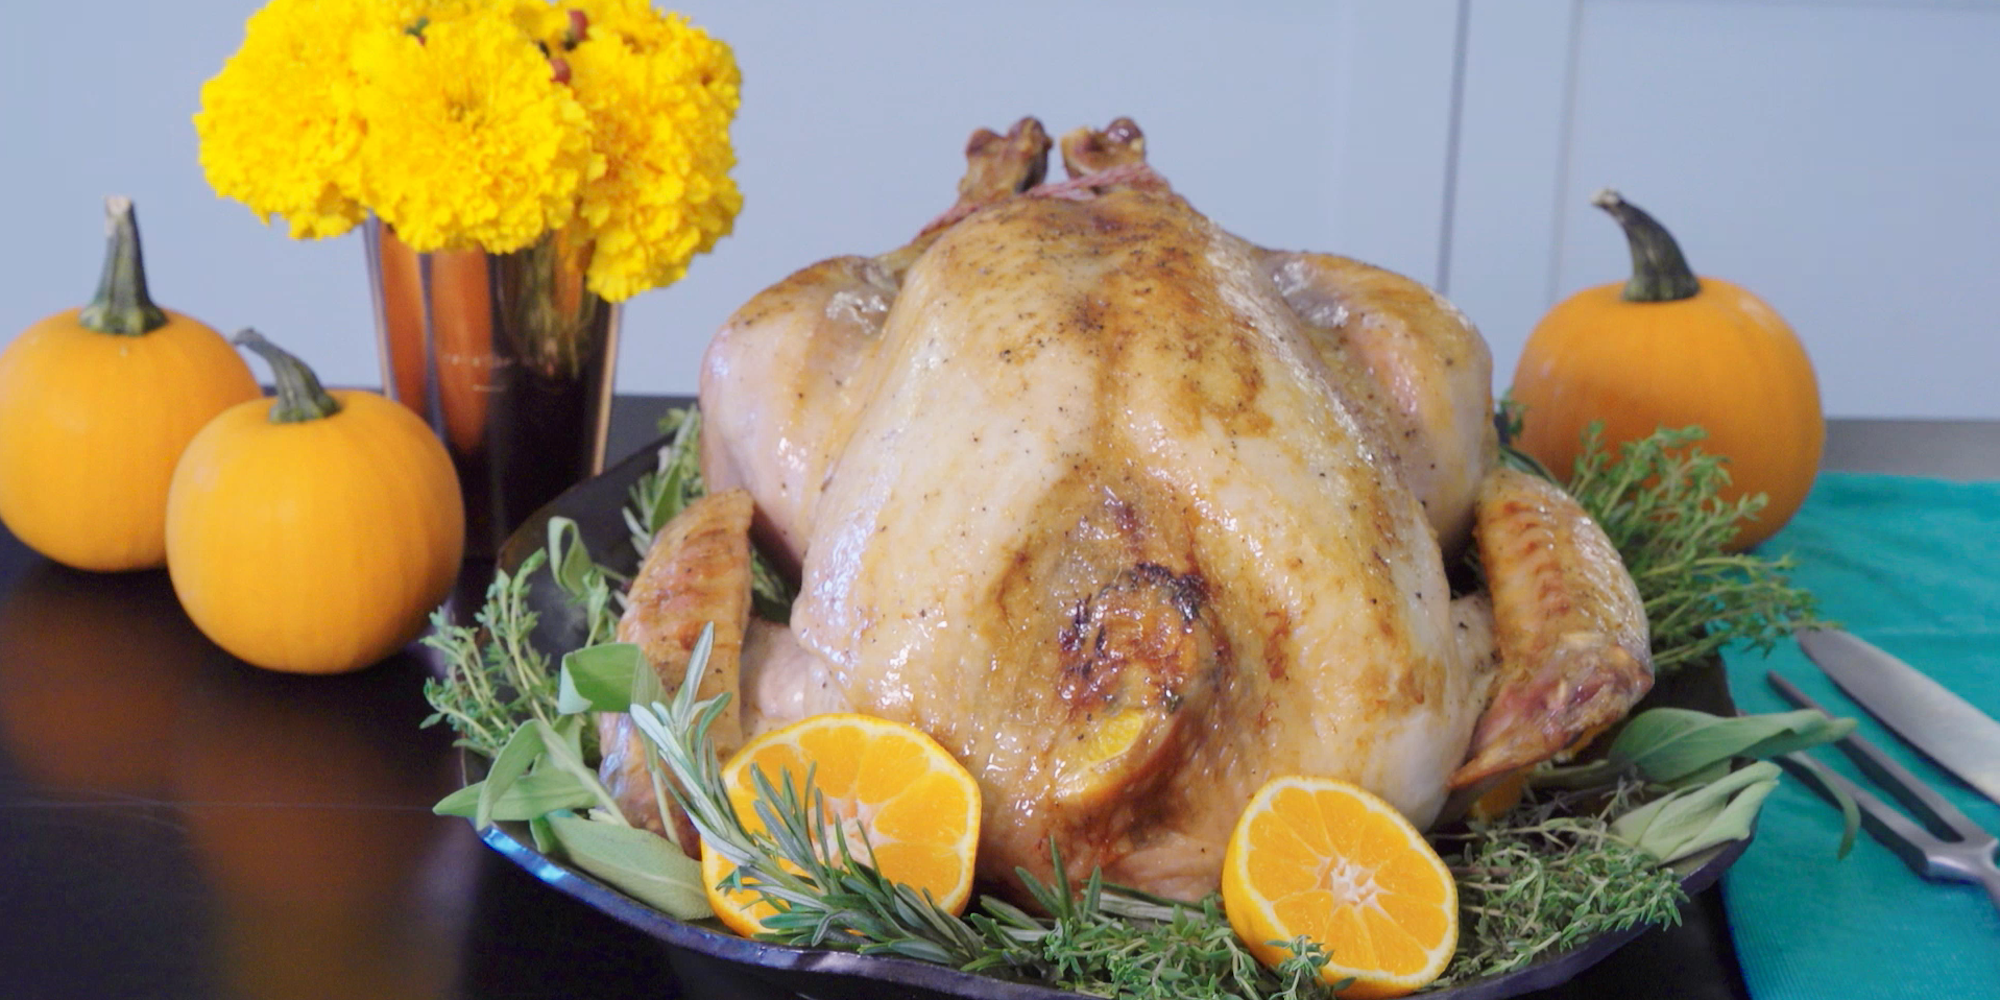 How To Perfectly Prepare A Turkey This Thanksgiving According To Test Kitchen Experts